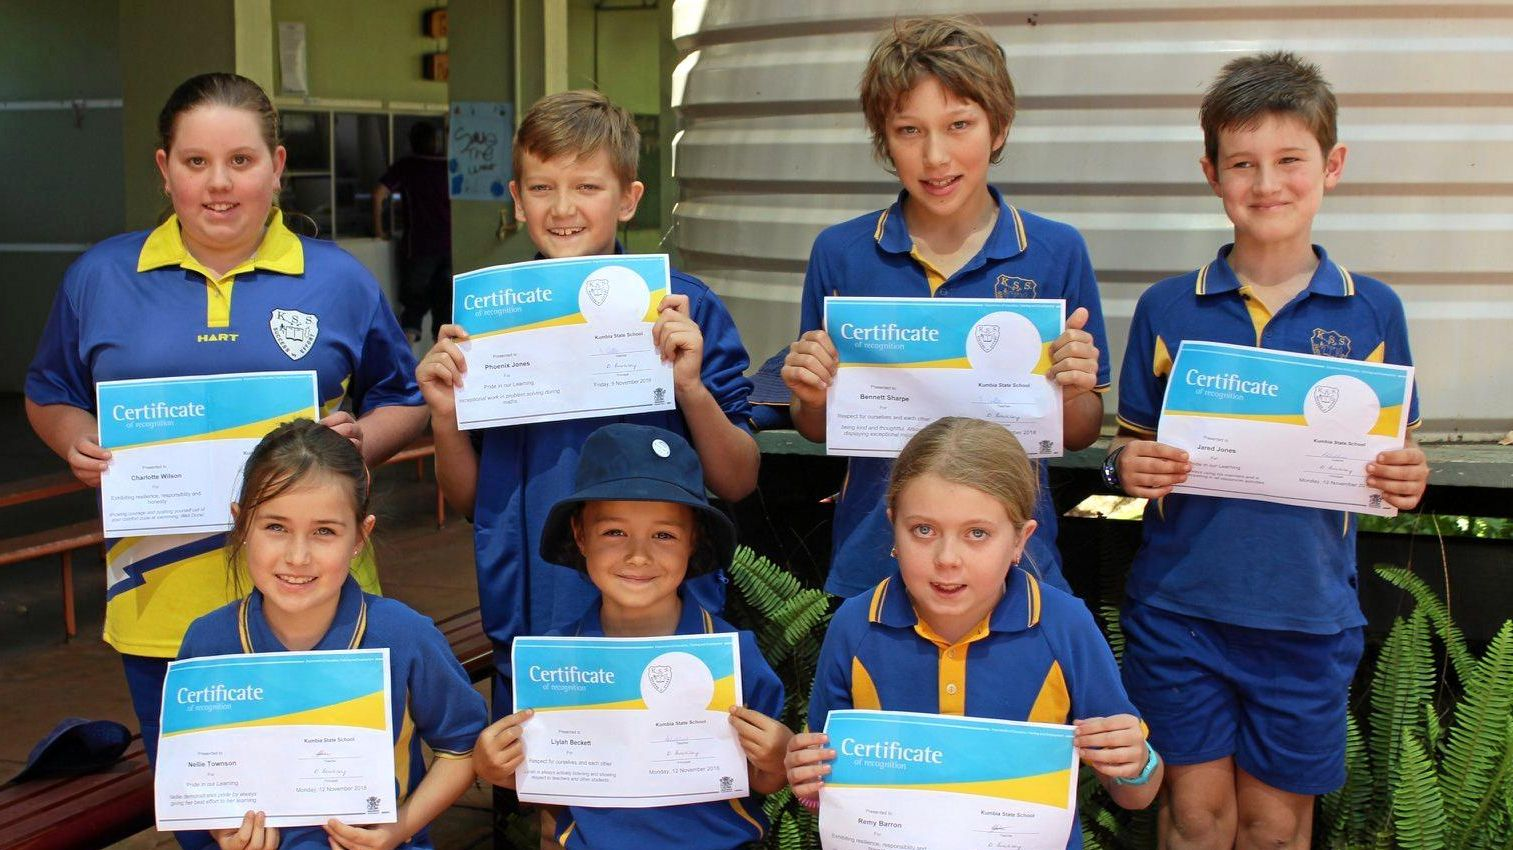 SUPER SCHOOL: Kumbia State School's weekly PRIDE awards winners: Back row from left to right: Charlotte Wilson, Phoenix Jones, Bennett Sharpe, Jared Jones. Front Row: Nellie Towson, Liylah Beckett, Remy Barron. Awards are presented to children who have demonstrated the five PRIDE values: pride in learning, respect for ourselves and each other, important relationships, demonstrate safe and healthy choices and exhibit resilience, responsibility and honesty. Each week two or more students from each class are presented with a PRIDE award at the primary school's weekly parade.